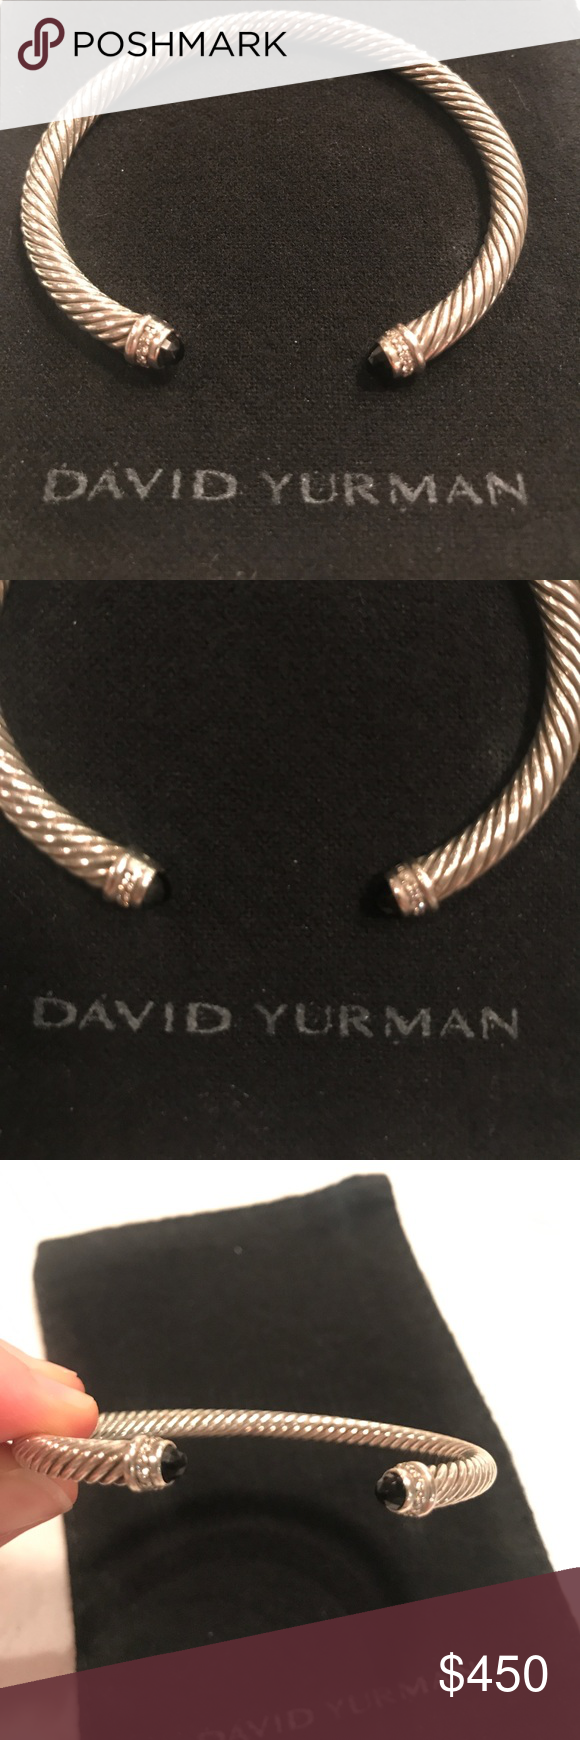 David Yurman 5mm Bracelet W Diamonds Black Onyx David